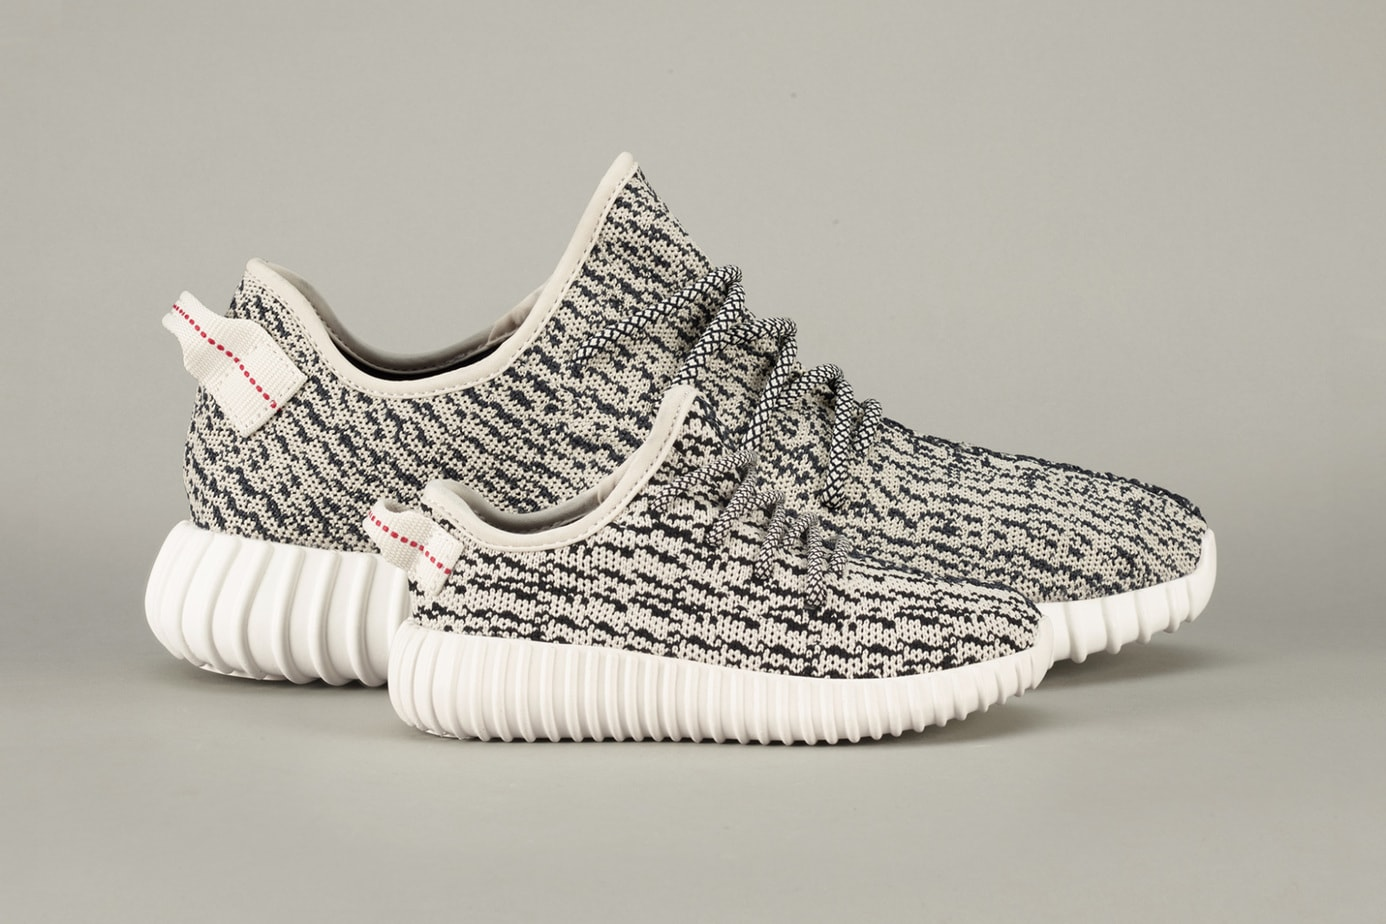 adidas Yeezy 350 Boost Infant Turtle Dove